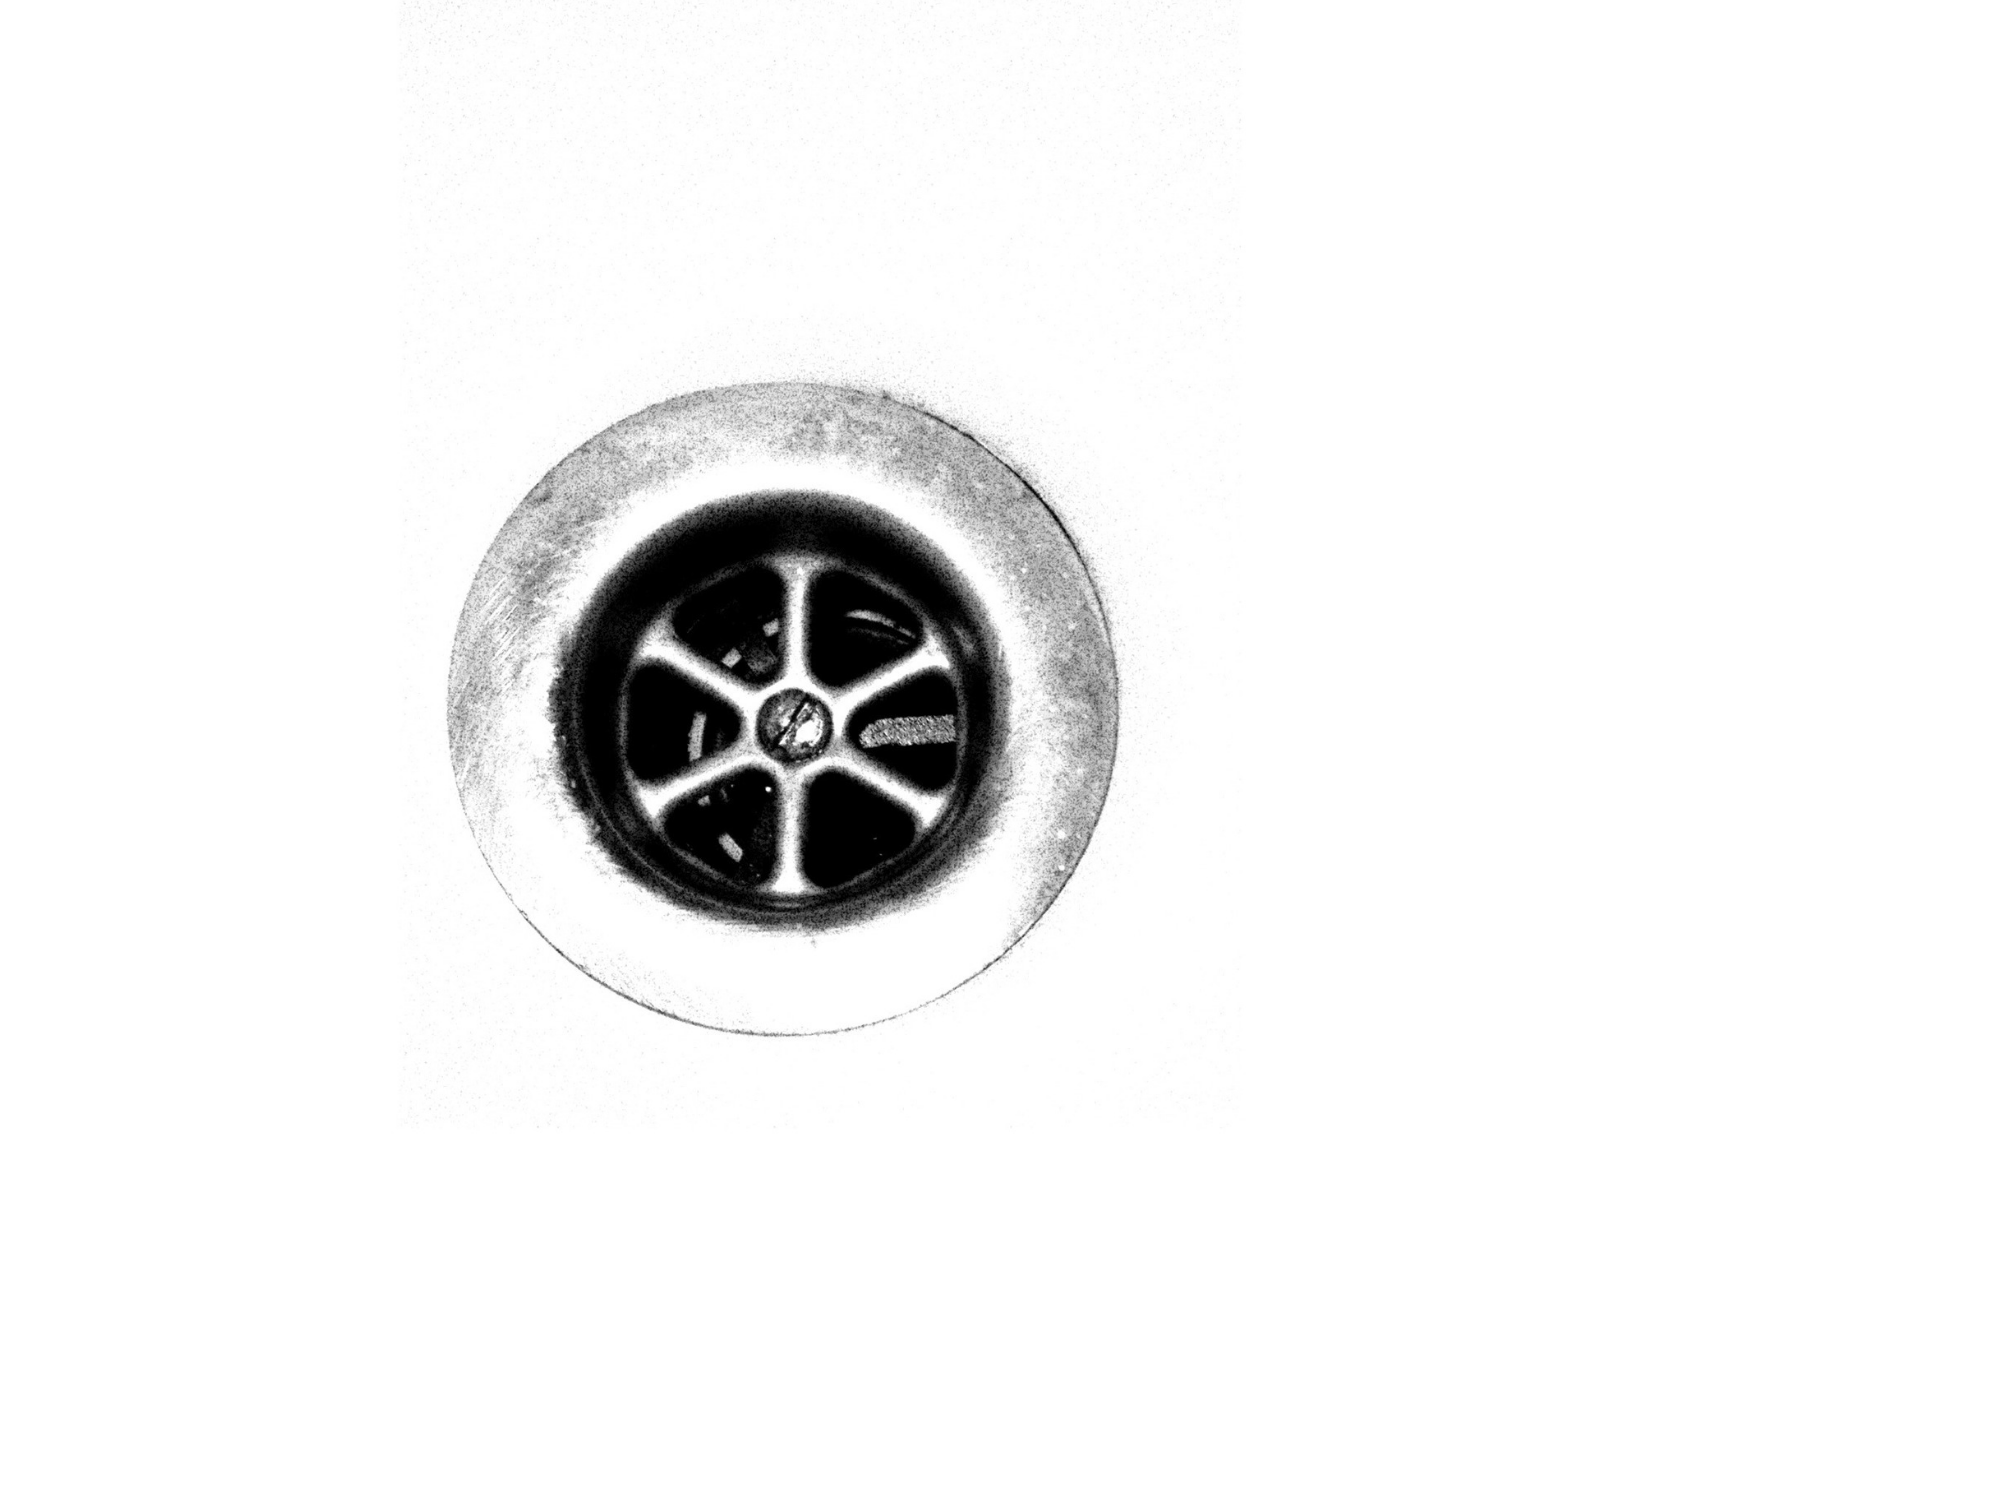 sink editted.png